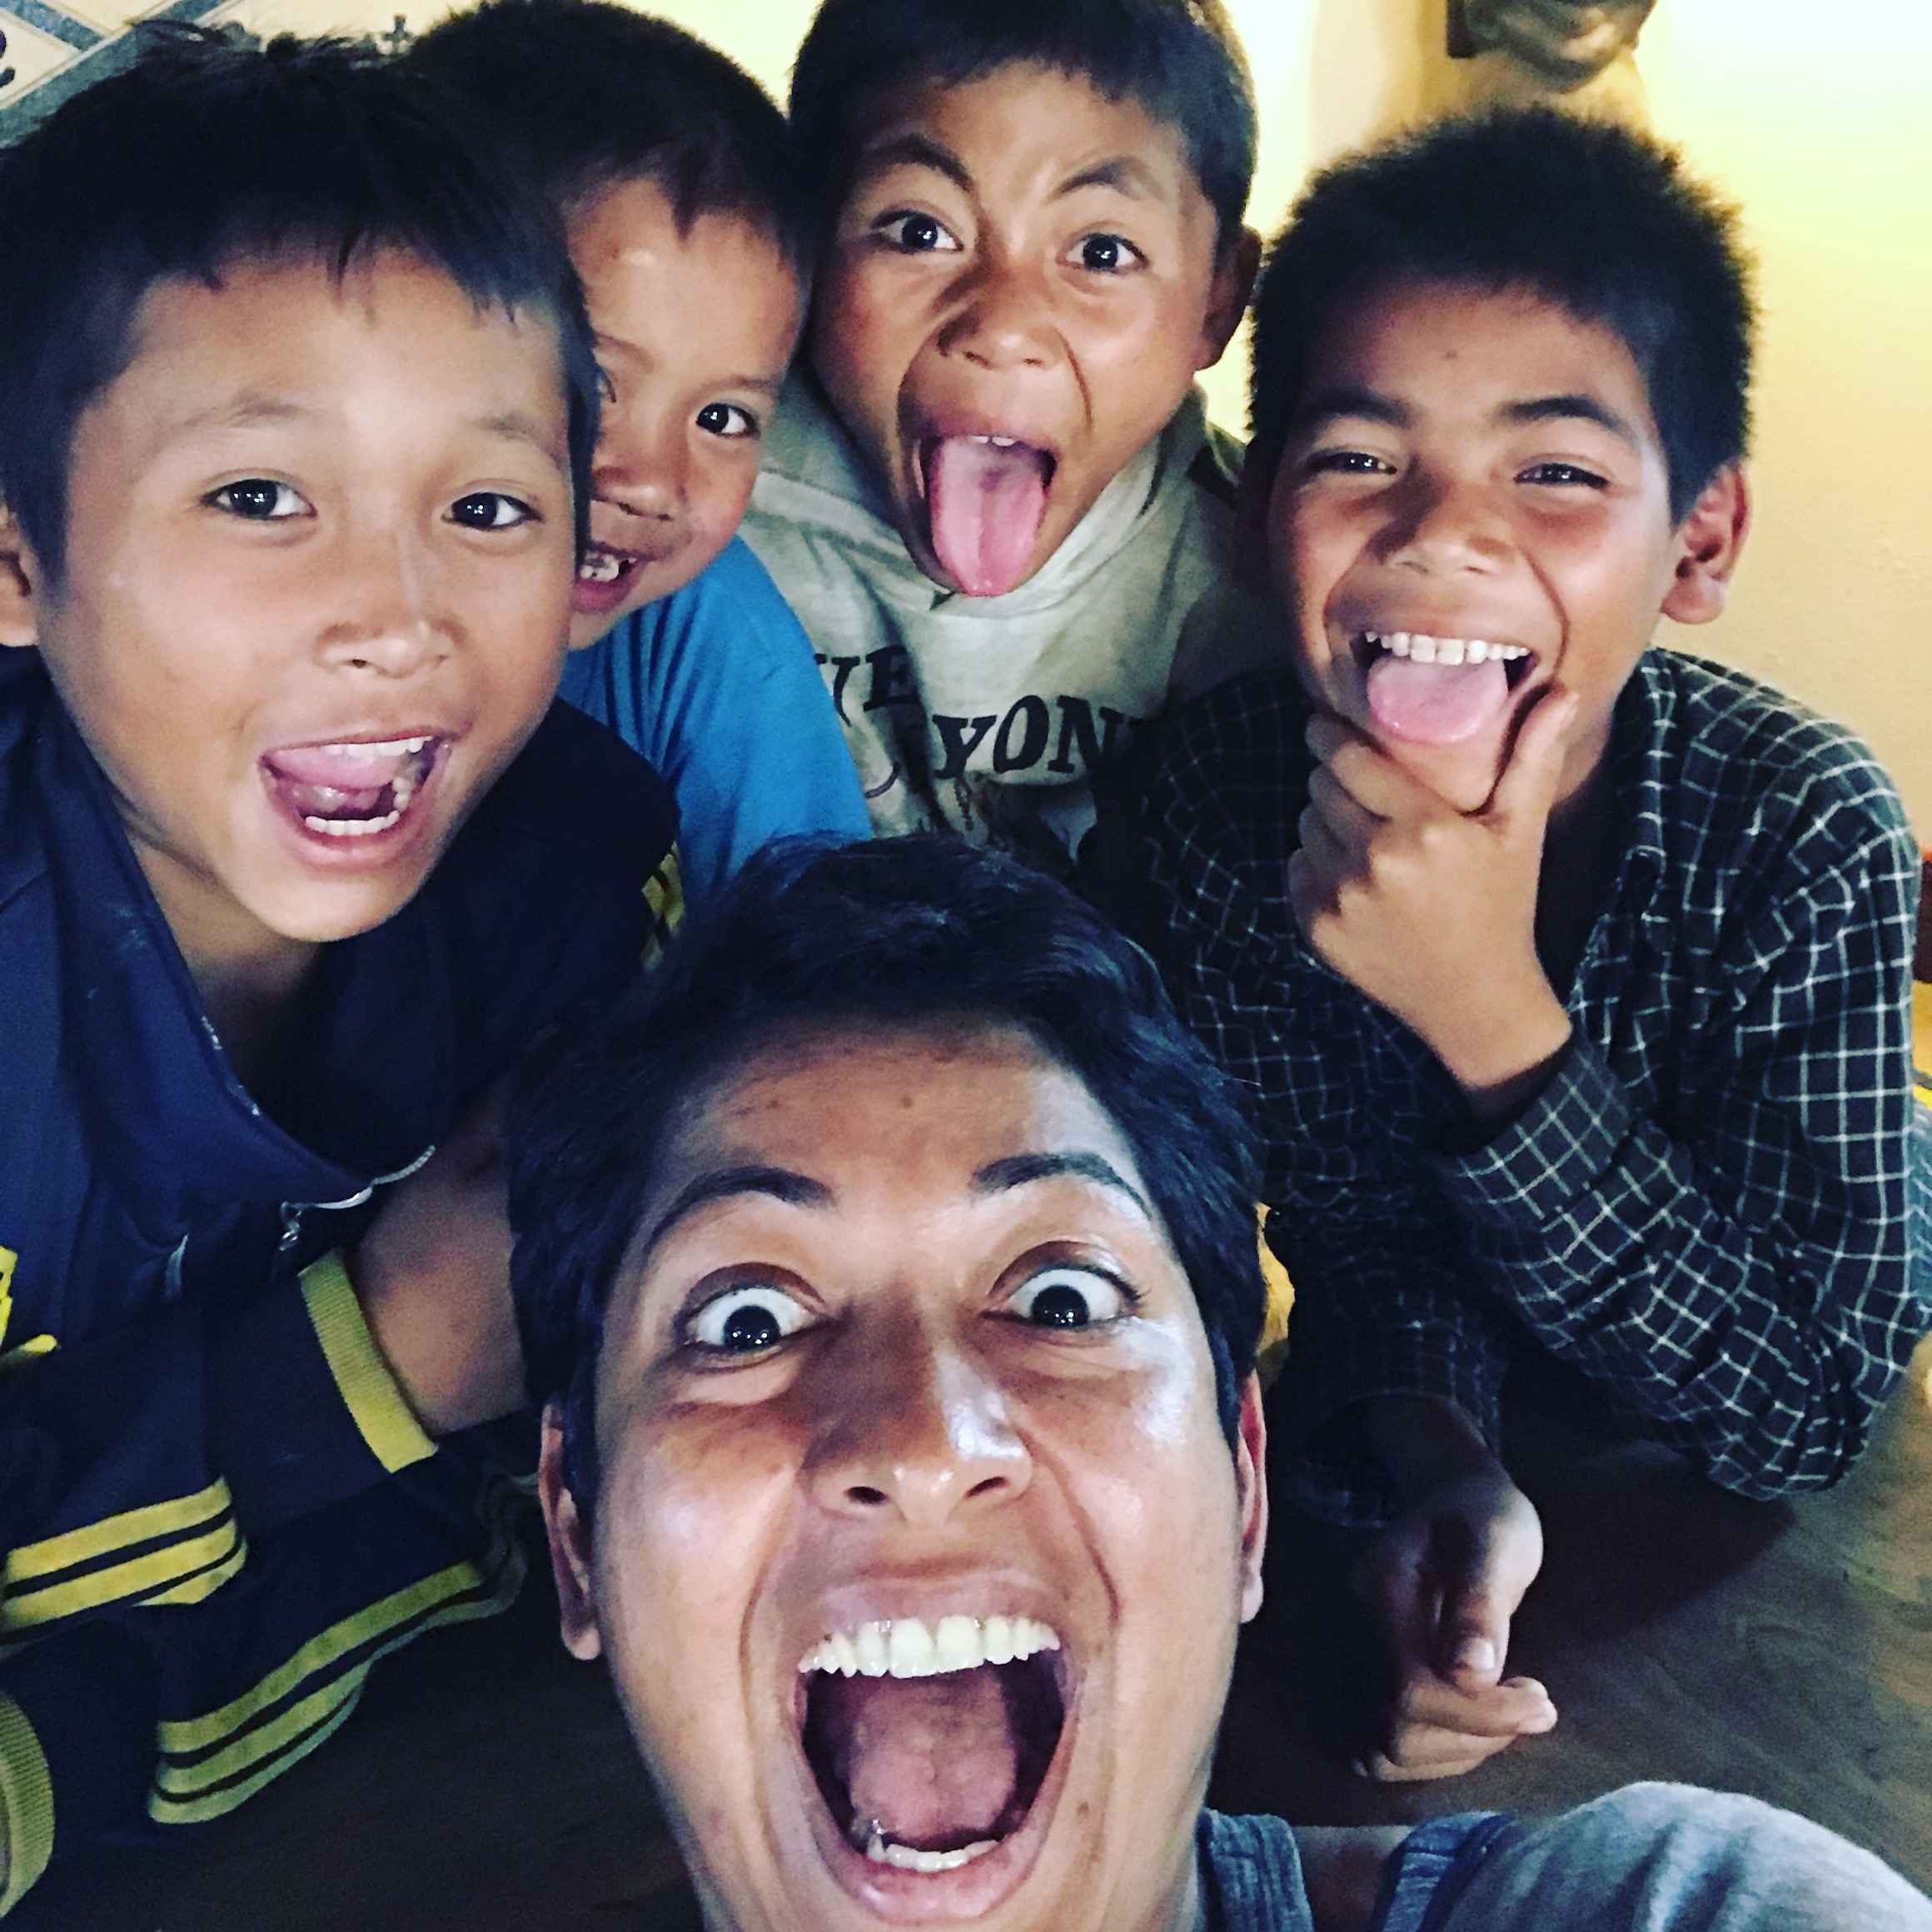 With the amazing children of Paksong, Laos. Photo credit: Jen Green. Thank you Yen for bringing me to Laos in the first place and Tyson for so graciously hosting!